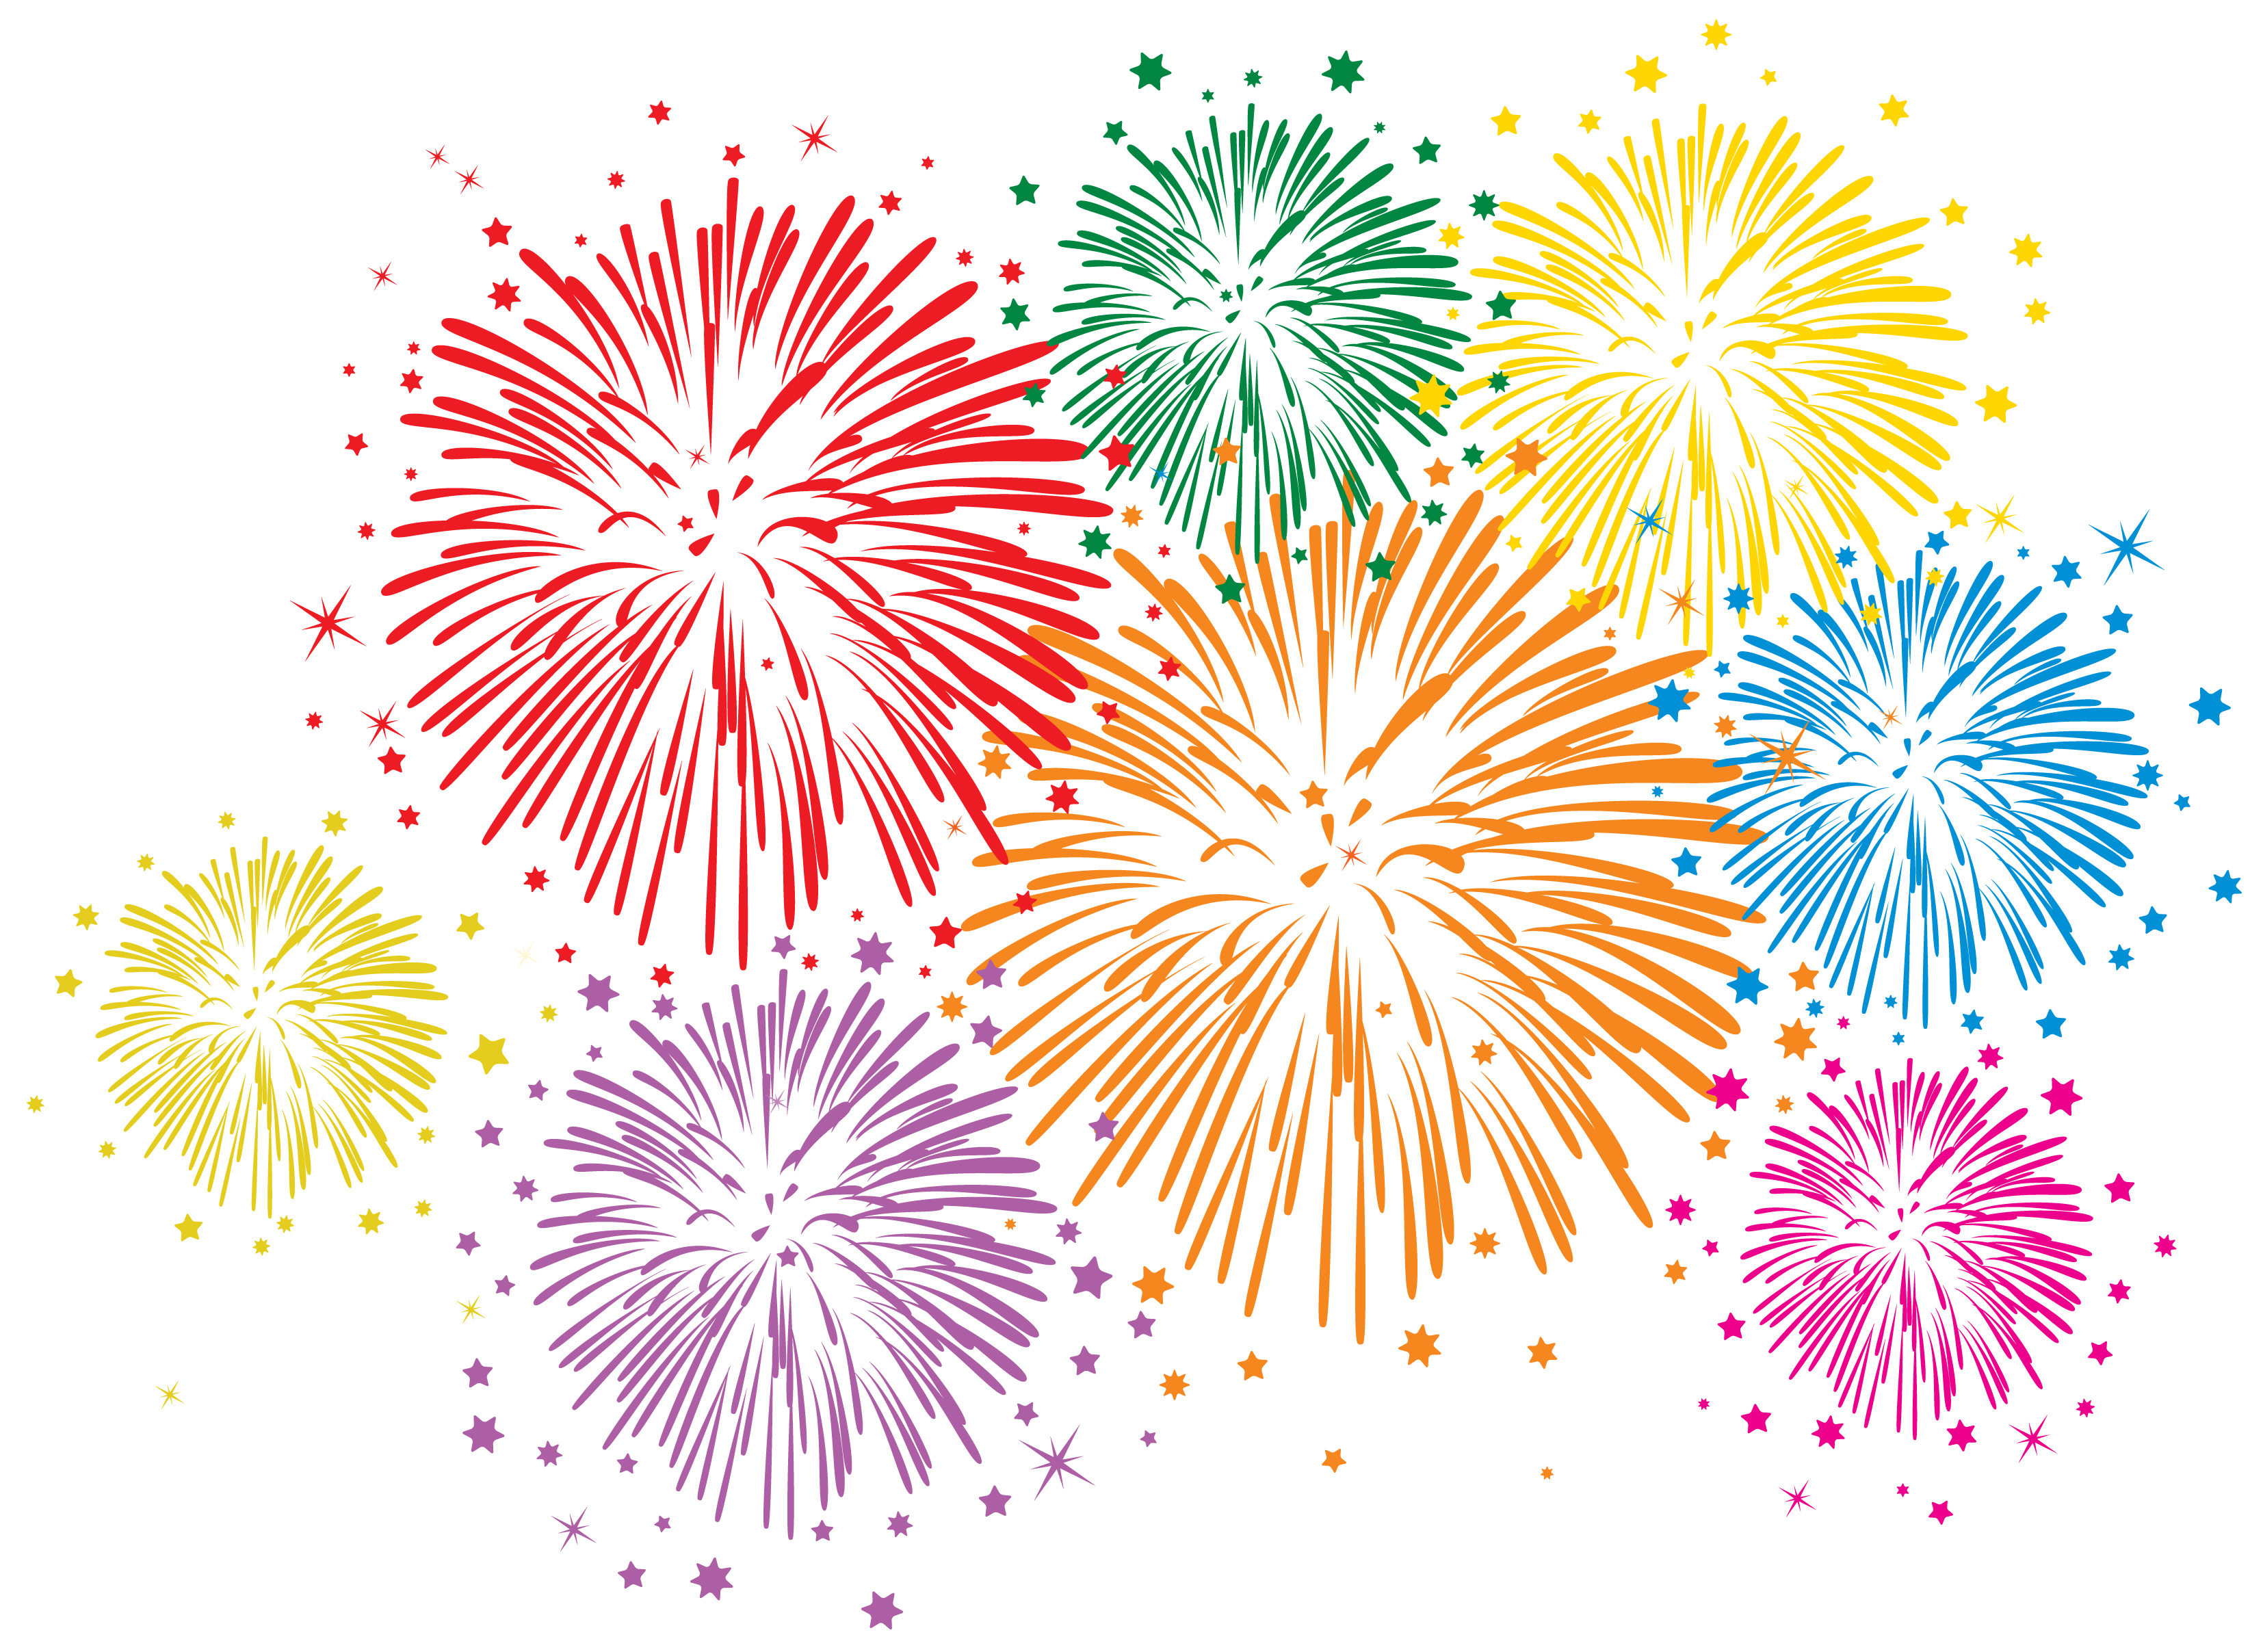 Fireworks firework clipart colorful